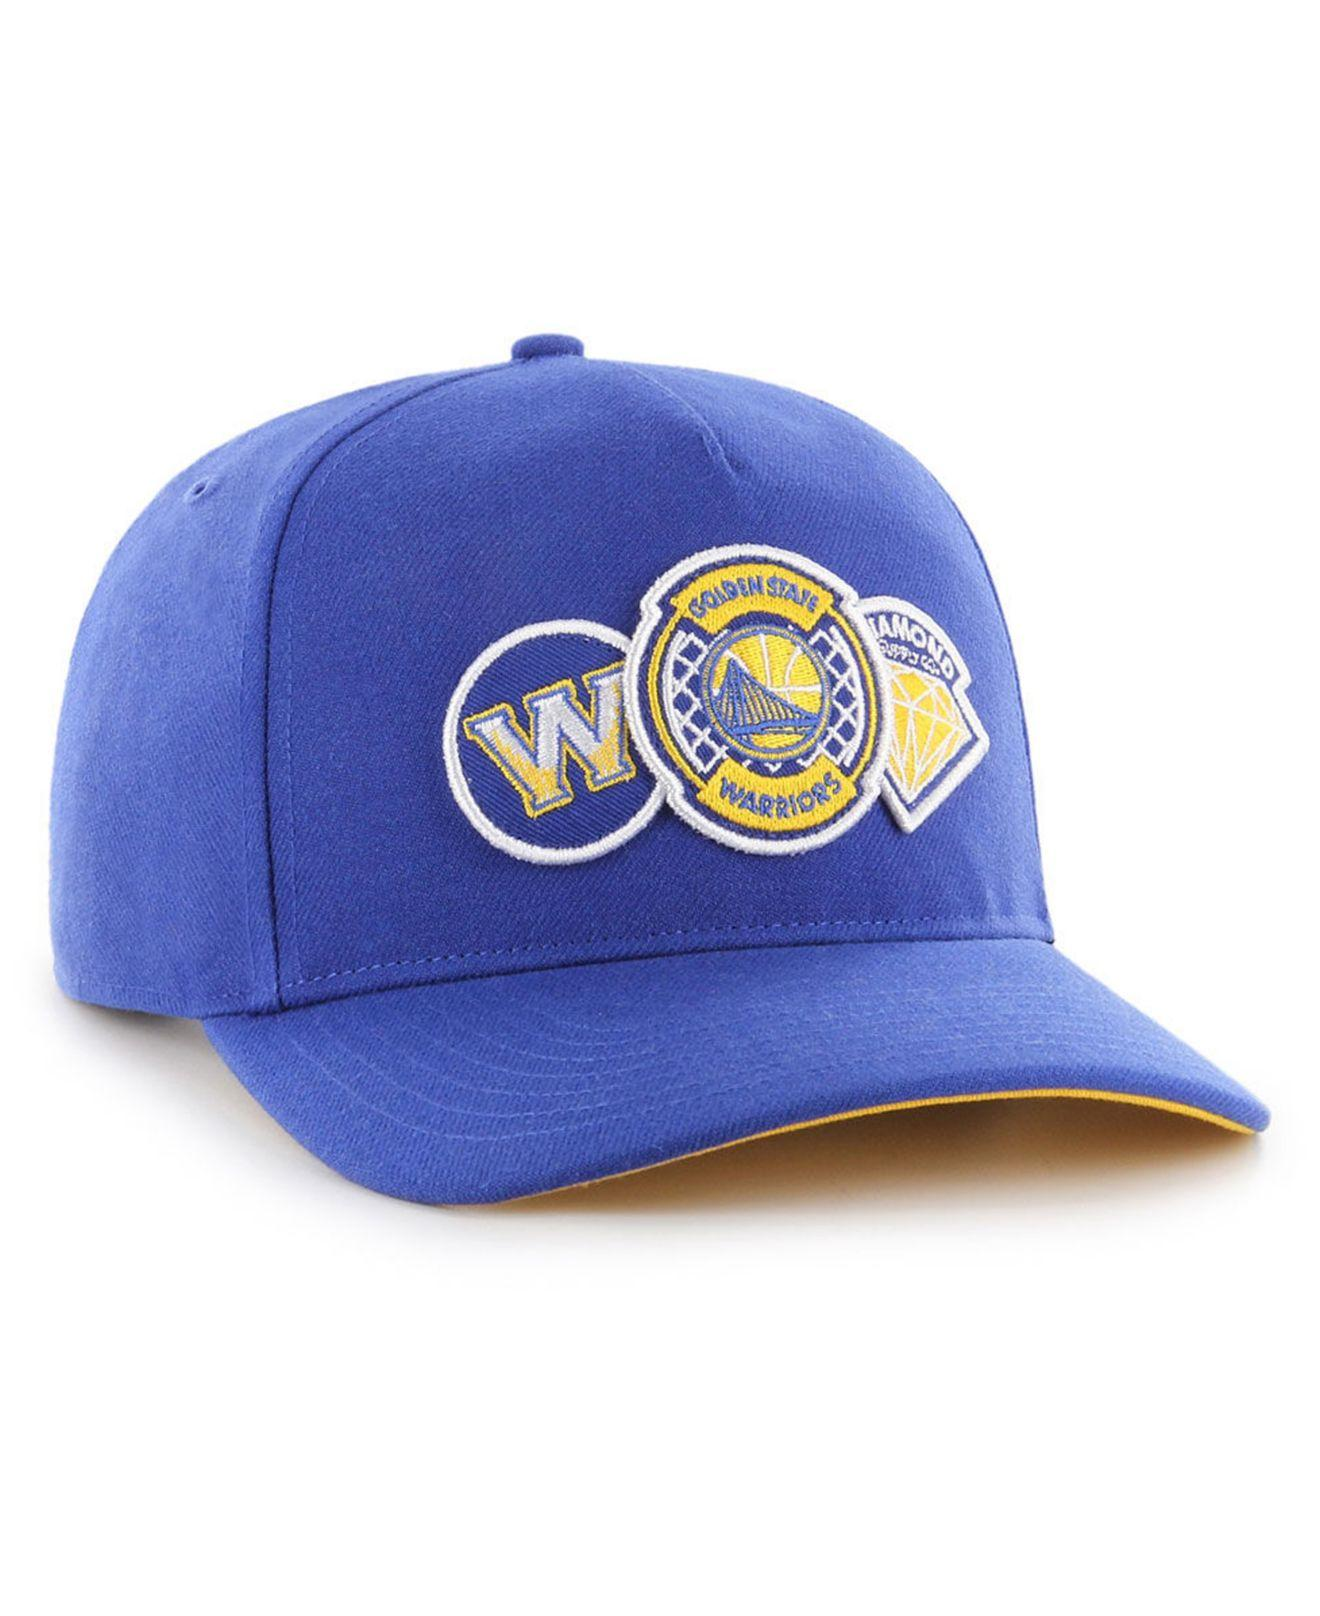 new style 5c155 9c2d8 Lyst - 47 Brand Golden State Warriors Diamond Patch Captain Dt Cap in Blue  for Men